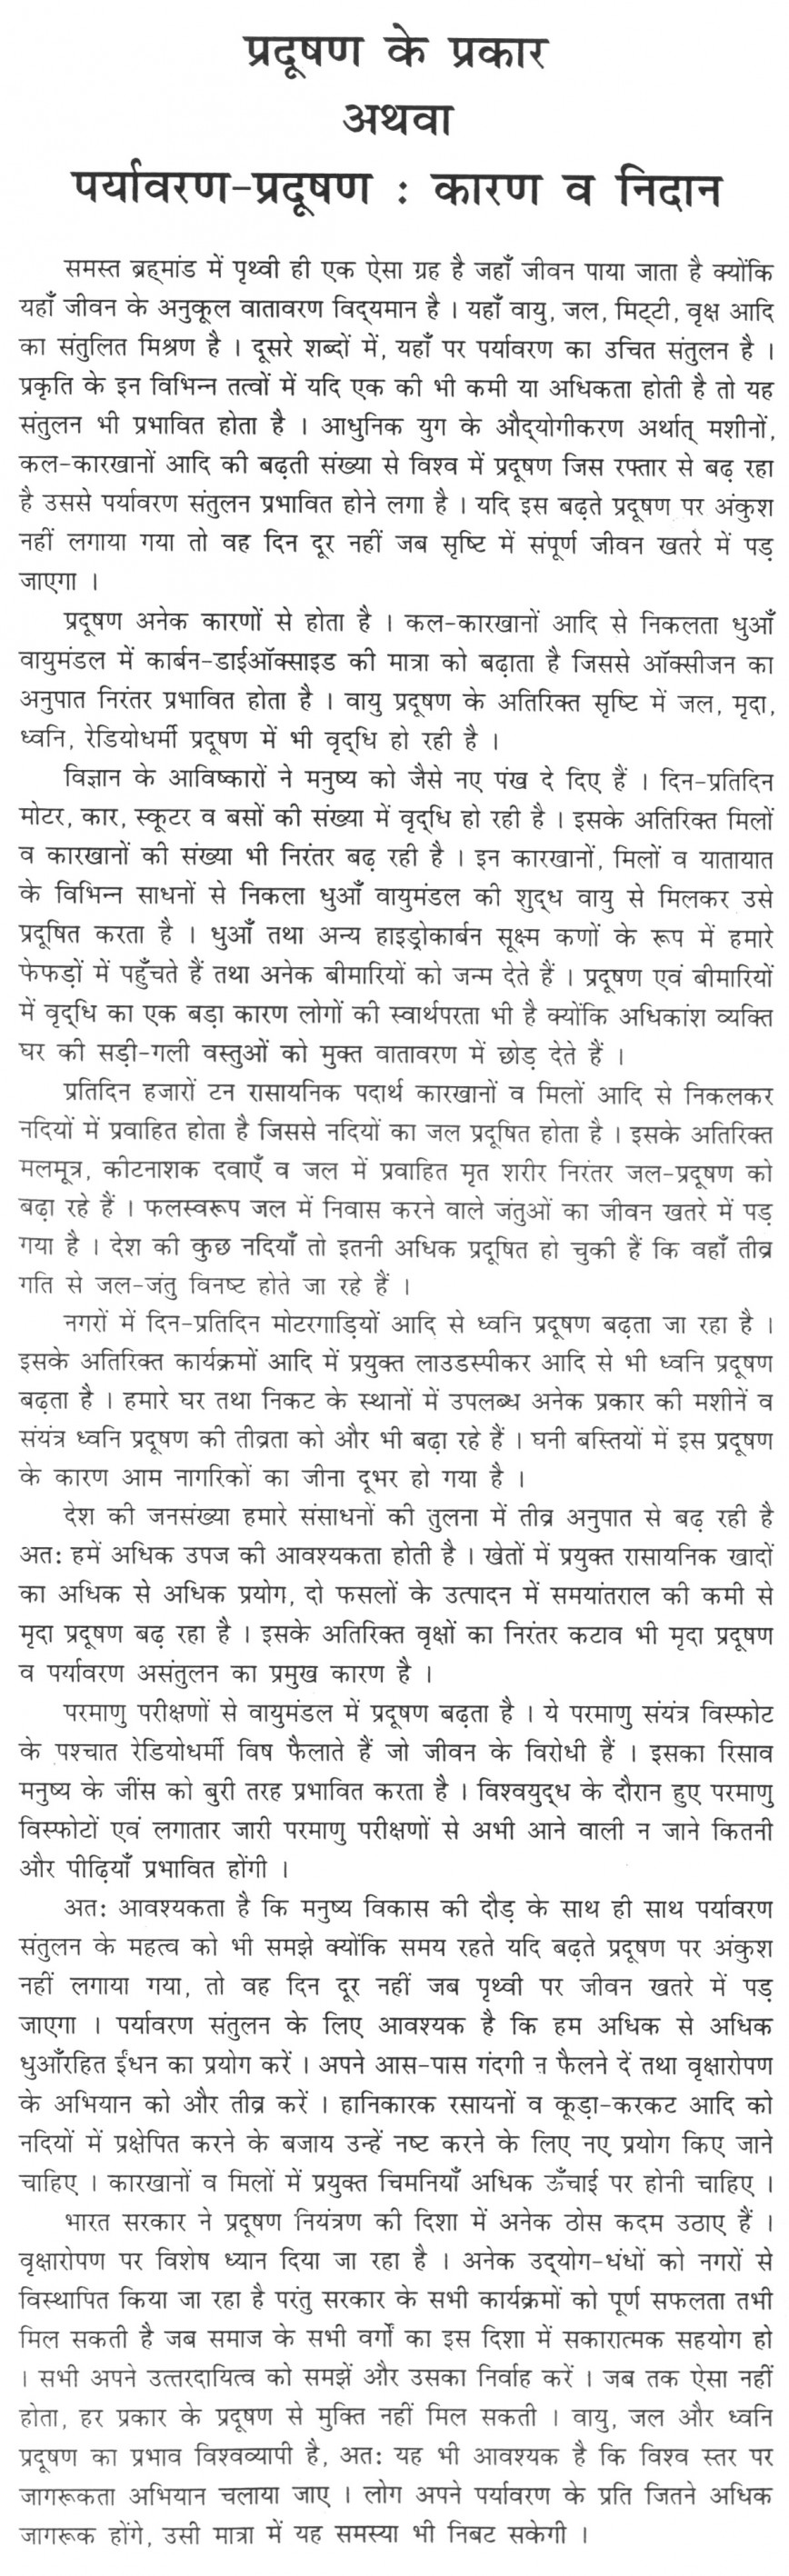 014 Good Habits Essay In Hindi Exceptional Reading Habit Wikipedia 868